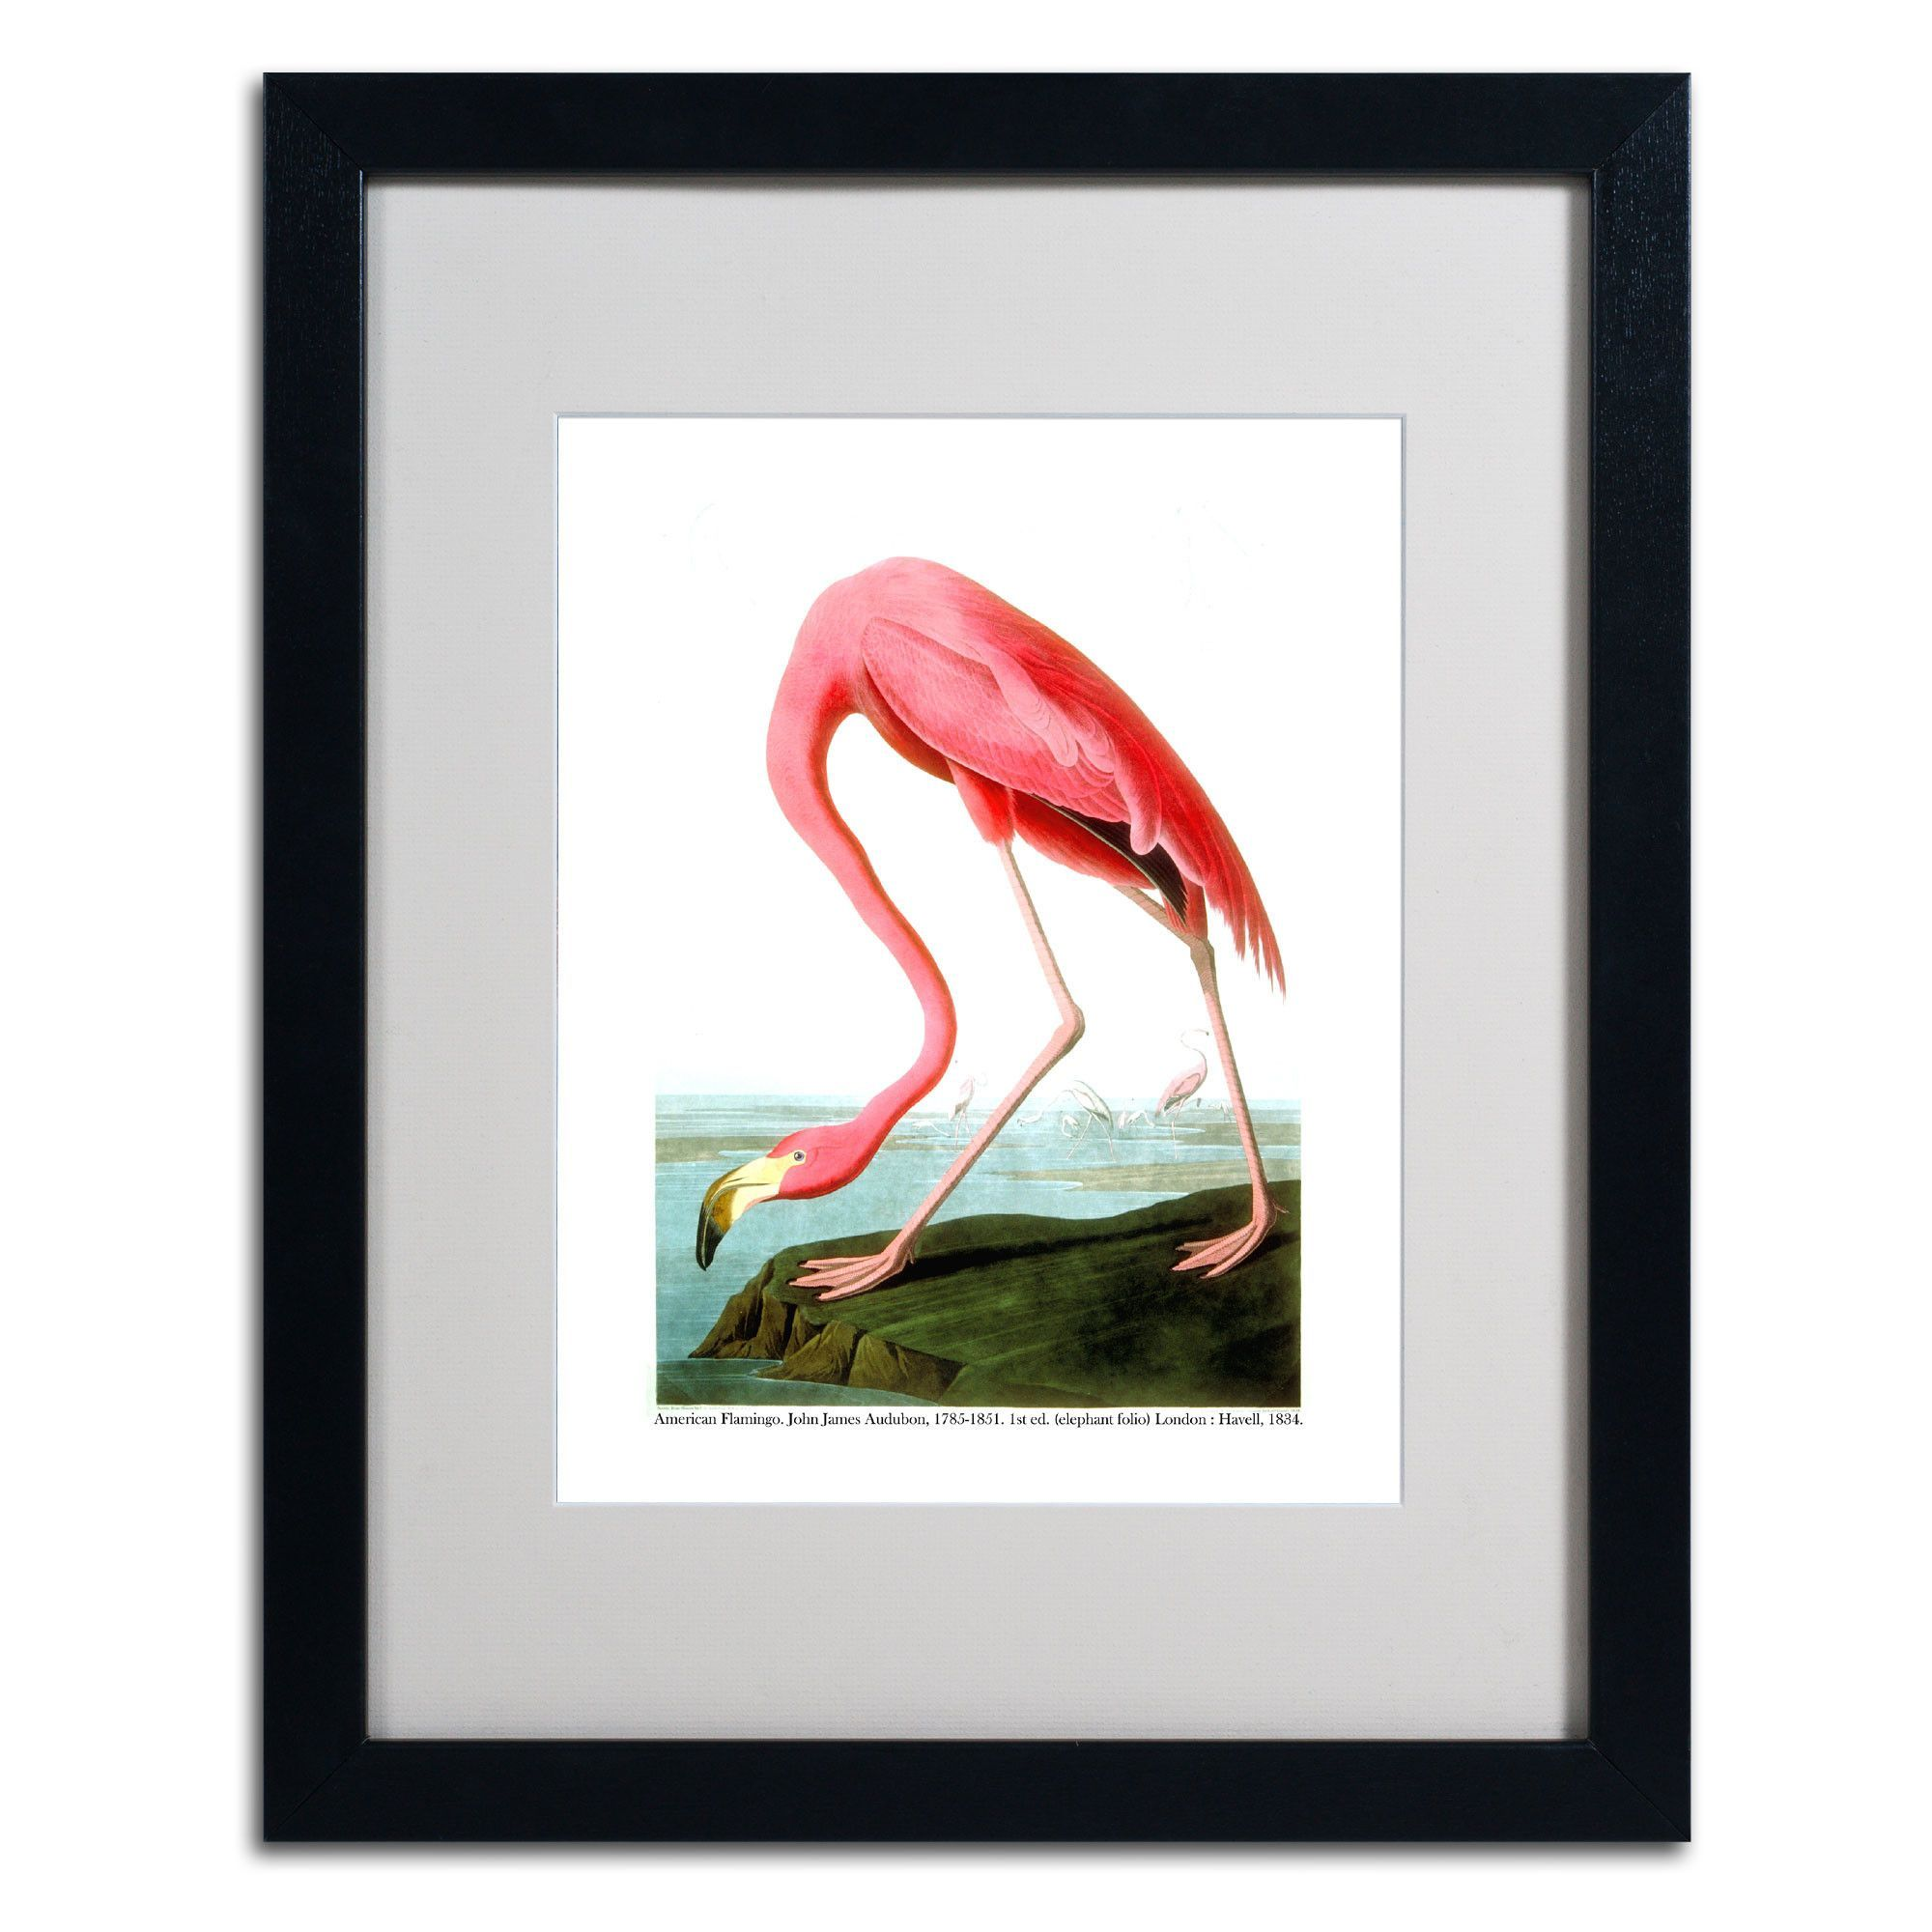 American Flamingo by John James Audubon Matted Framed Painting Print